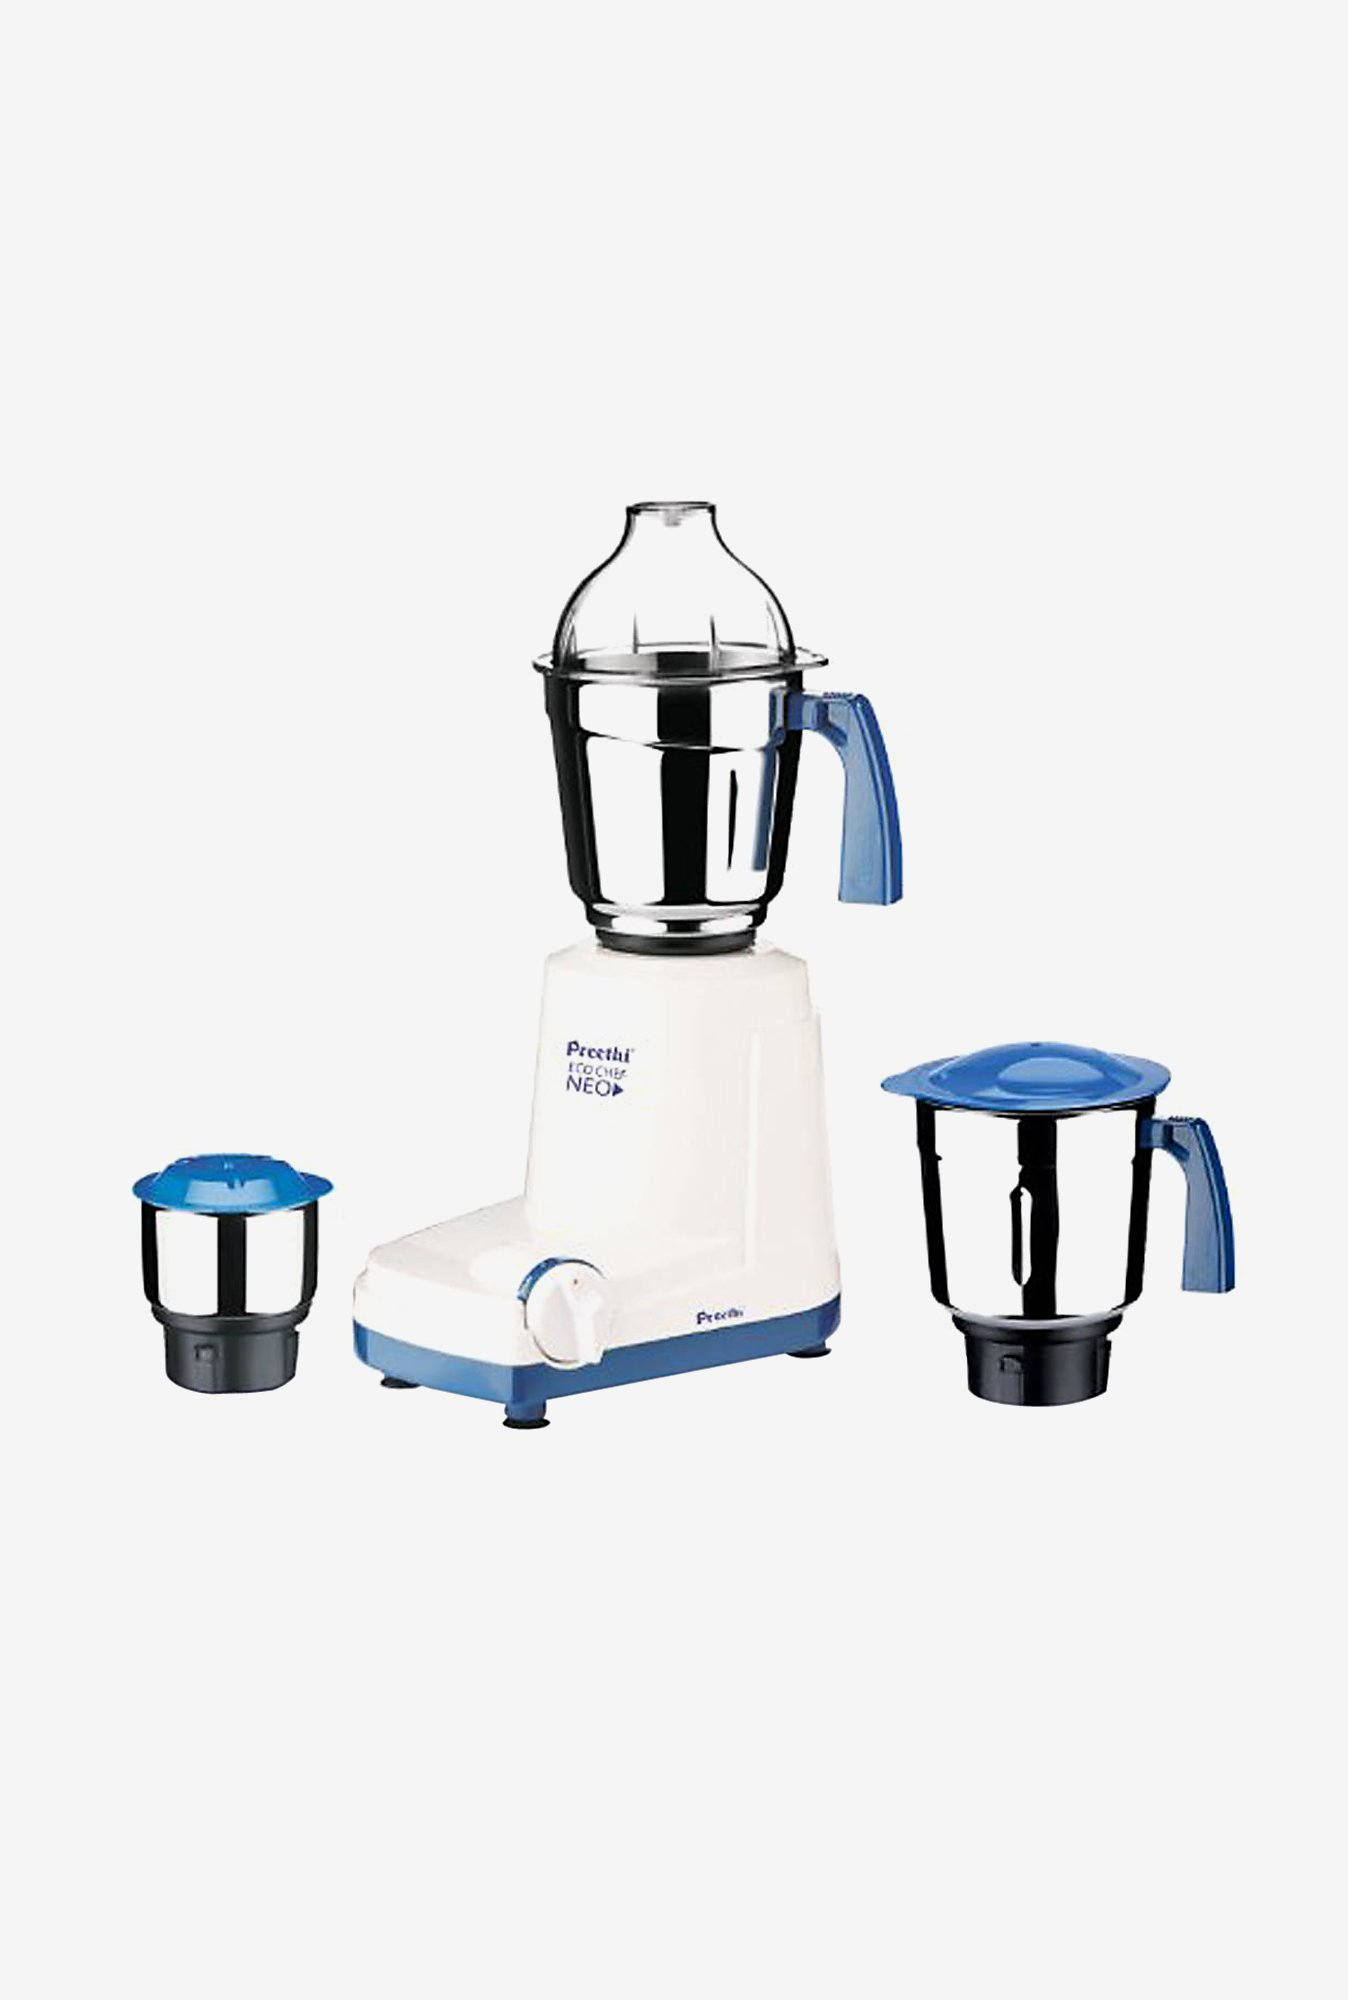 Preethi Eco Chef Neo MG199 500W Mixer Grinder (White & Blue)